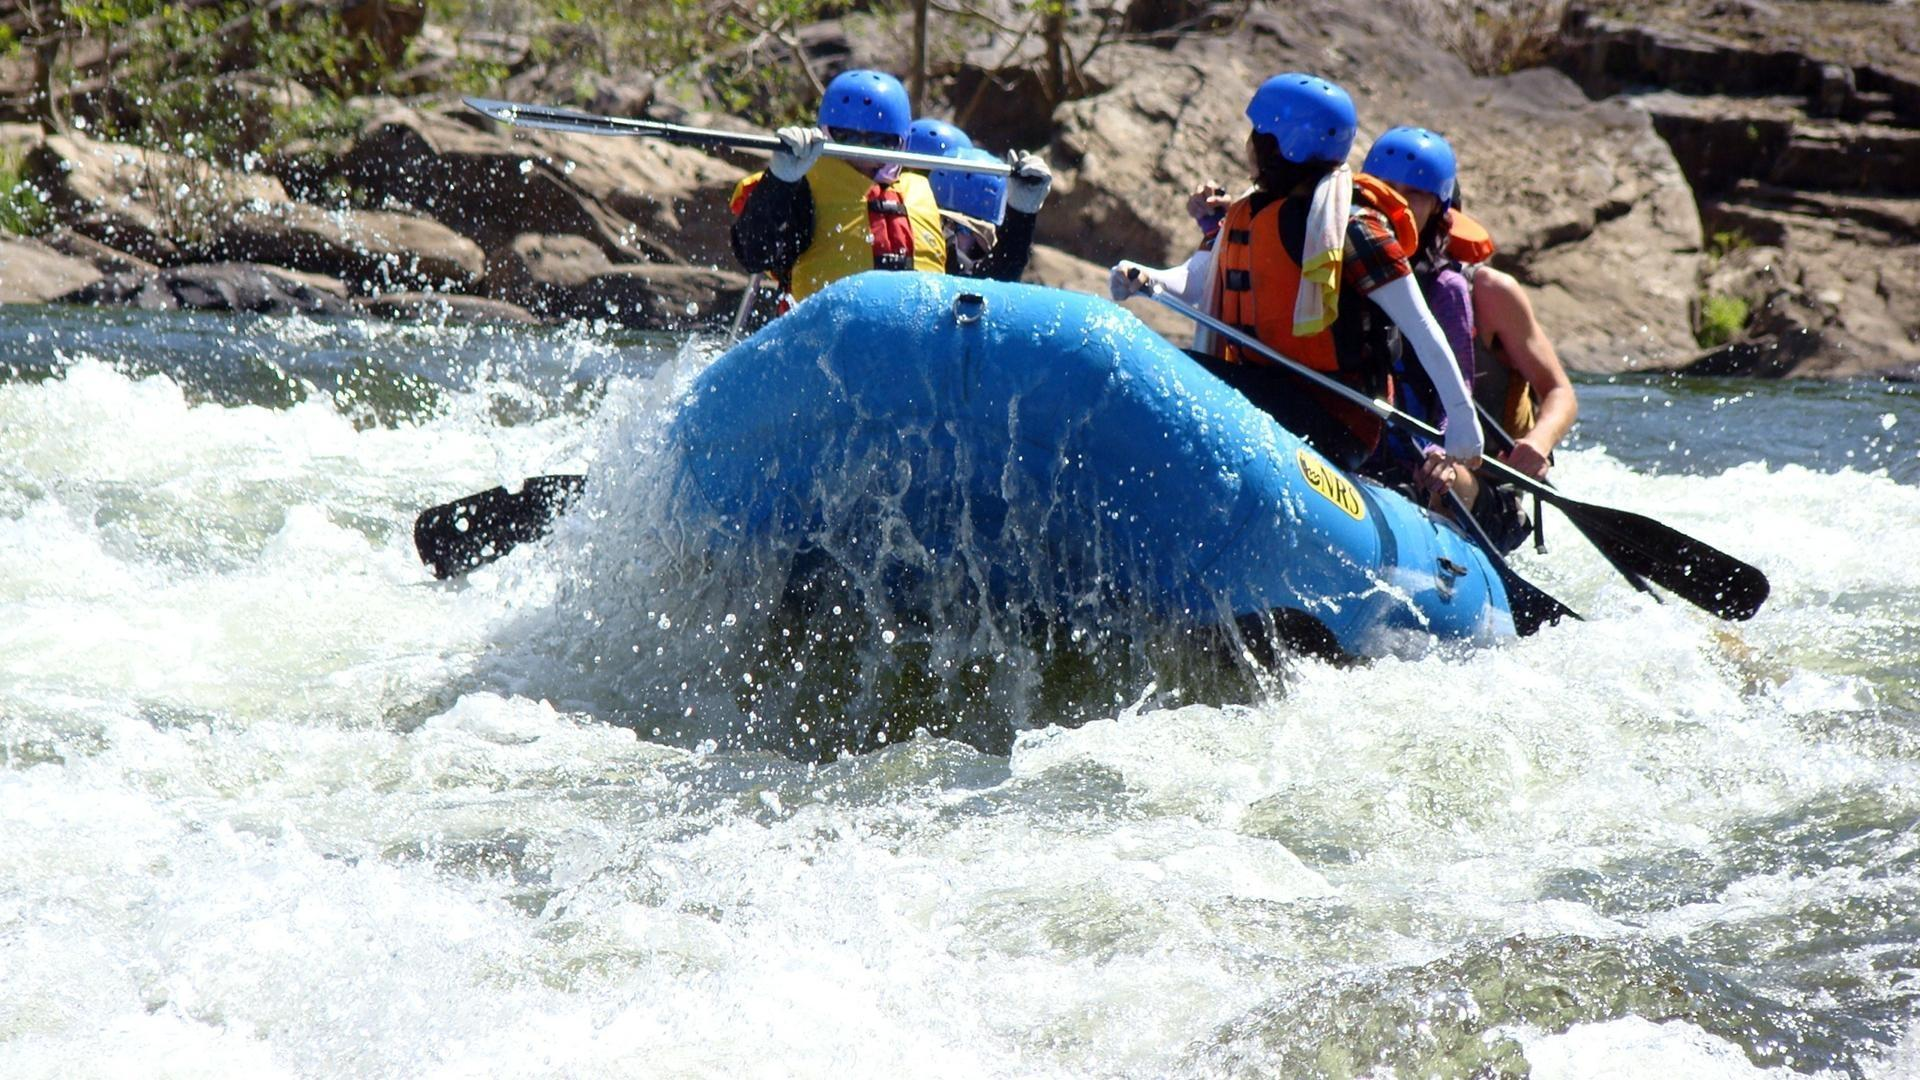 White Water Rafting Wallpapers HD Download